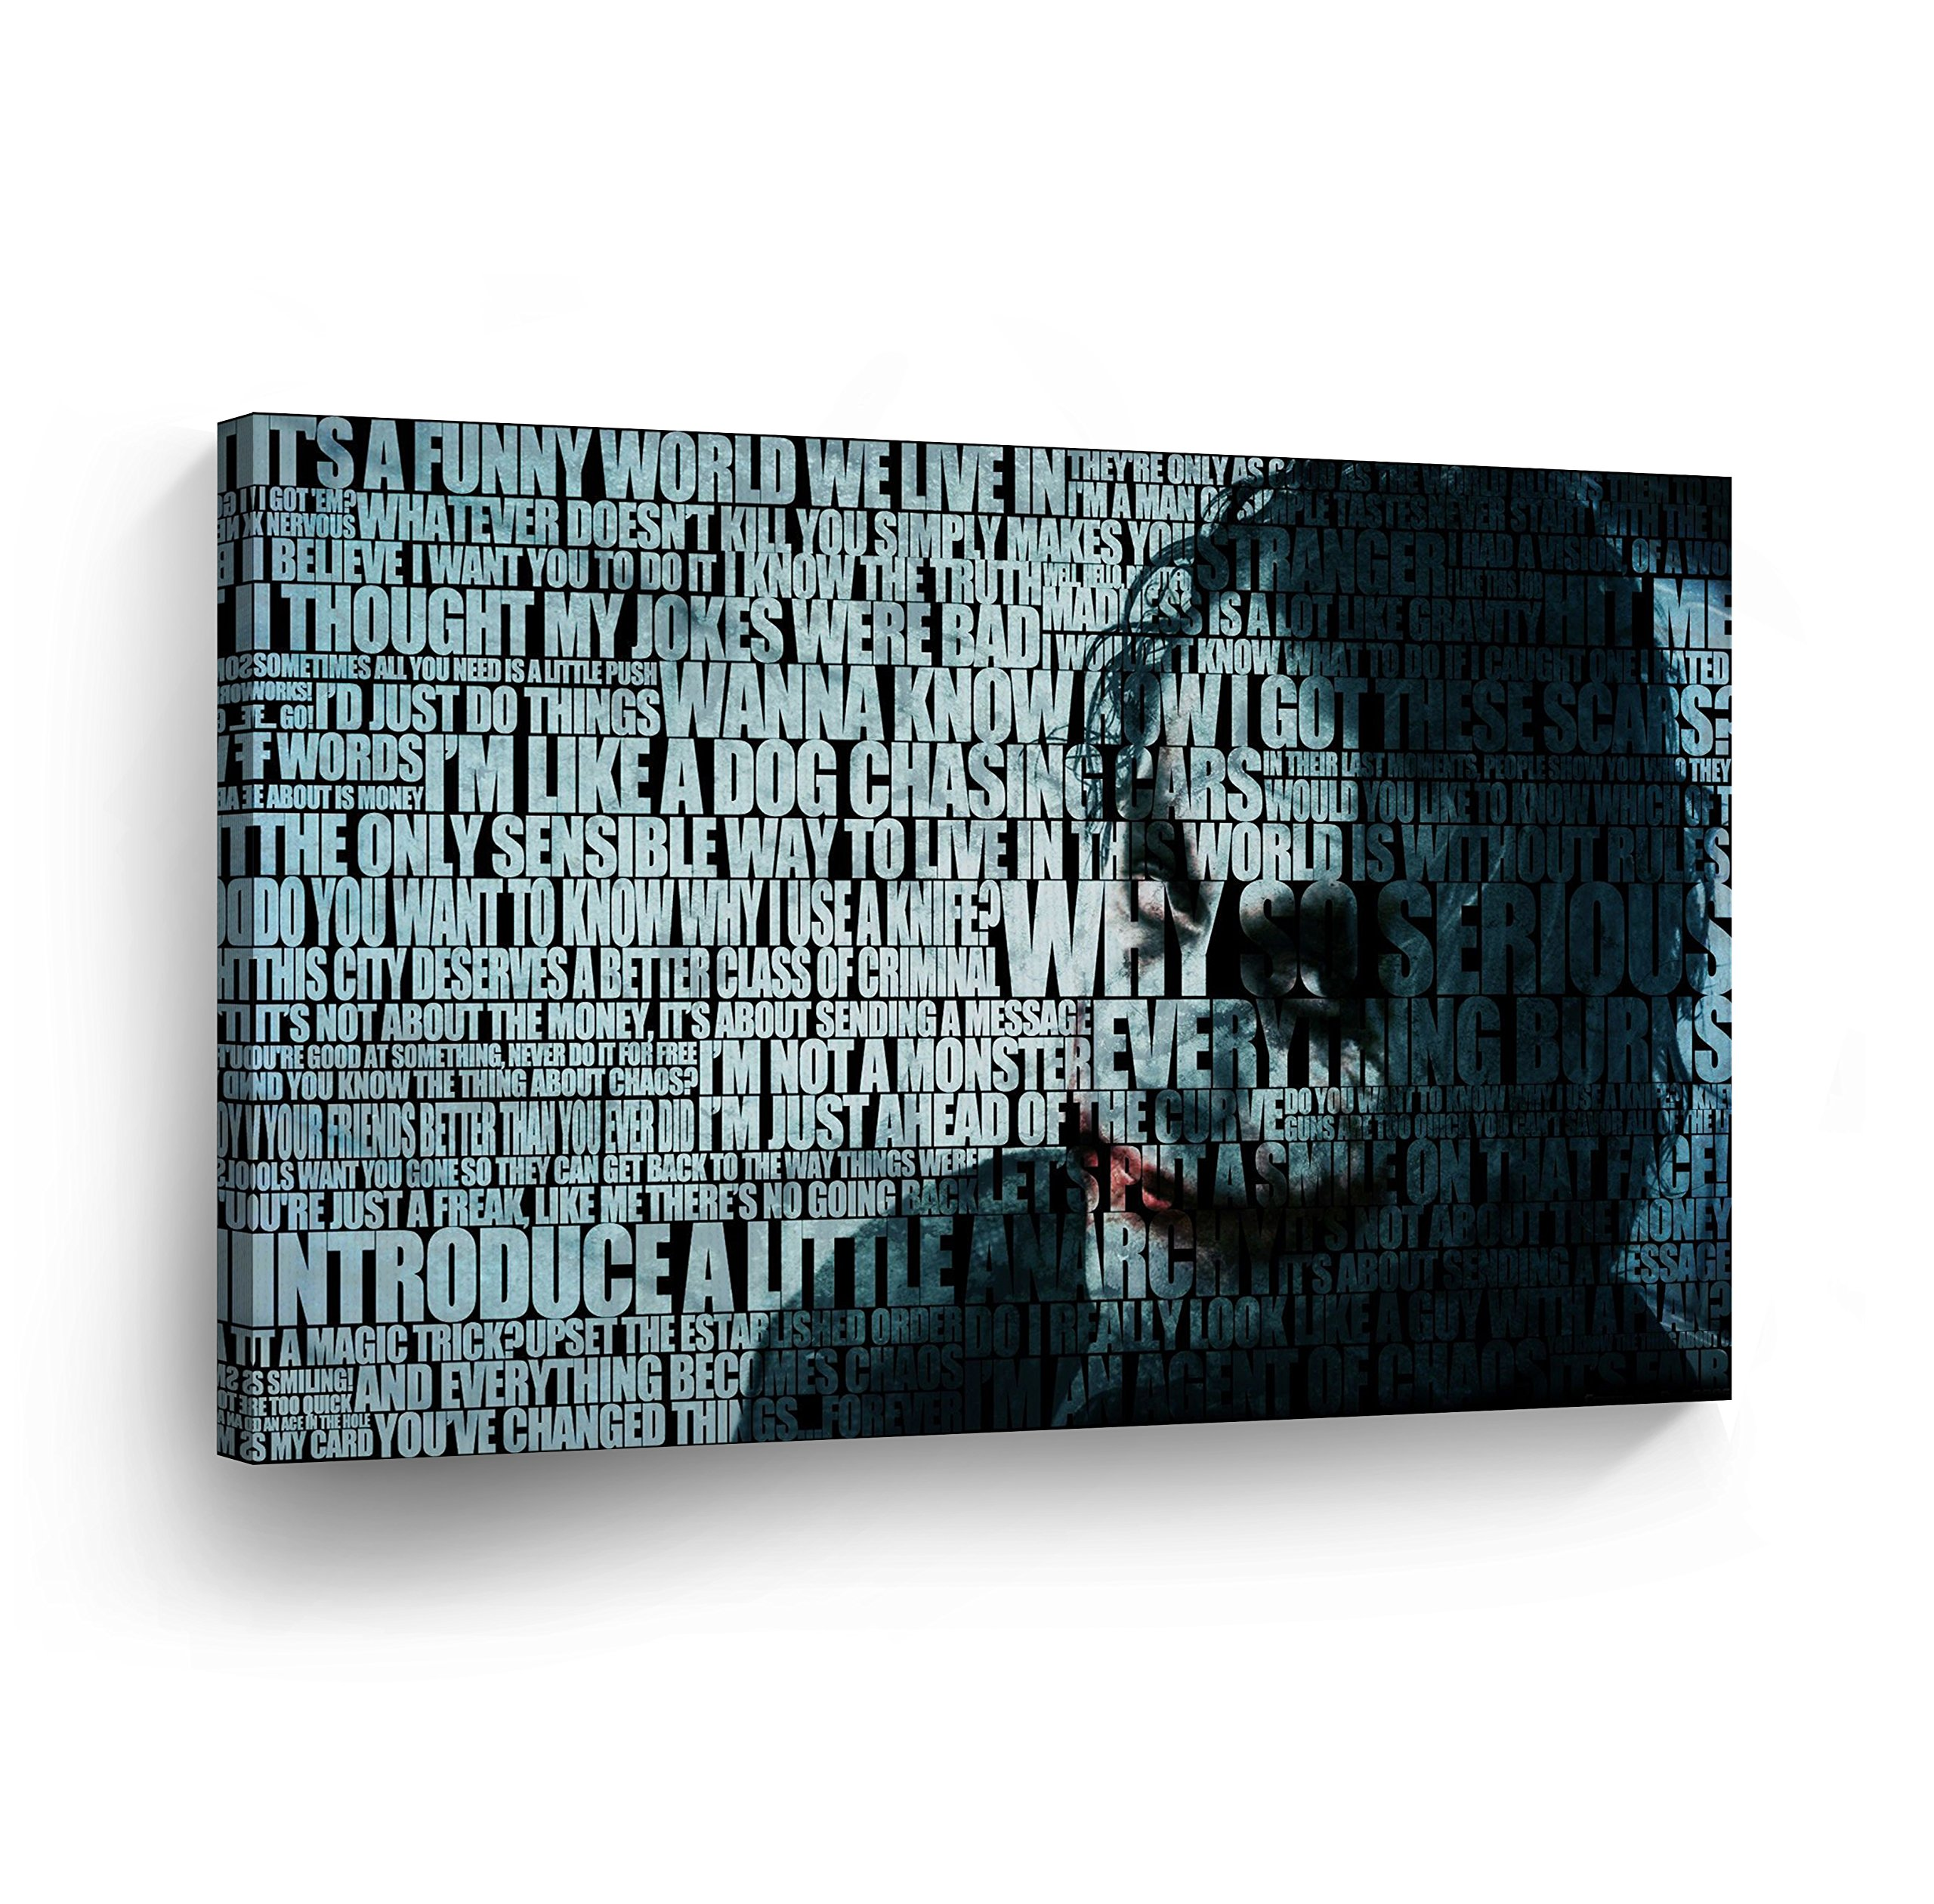 Joker Quotes Heath Ledger Decorative Art CANVAS PRINT Modern Wall Decor Artwork Wrapped Wood Stretcher Bars Vertical- Ready to Hang - %100 Handmade in the USA-JKH28 by Smile Art Design